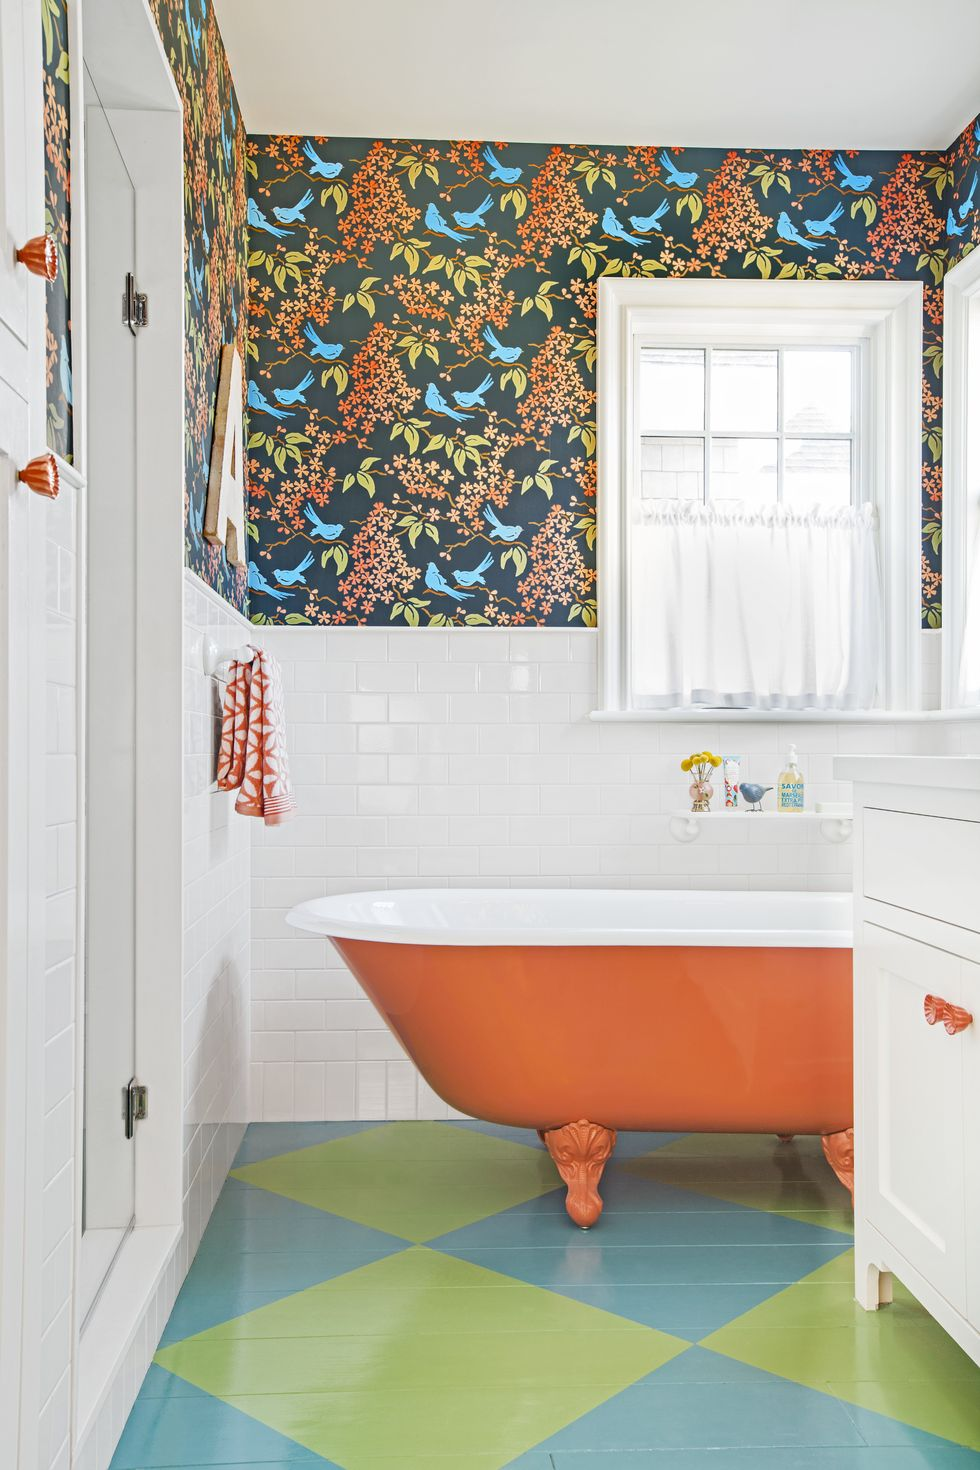 Orange clawfoot tub with painted bathroom floor and colorful wallpaper.